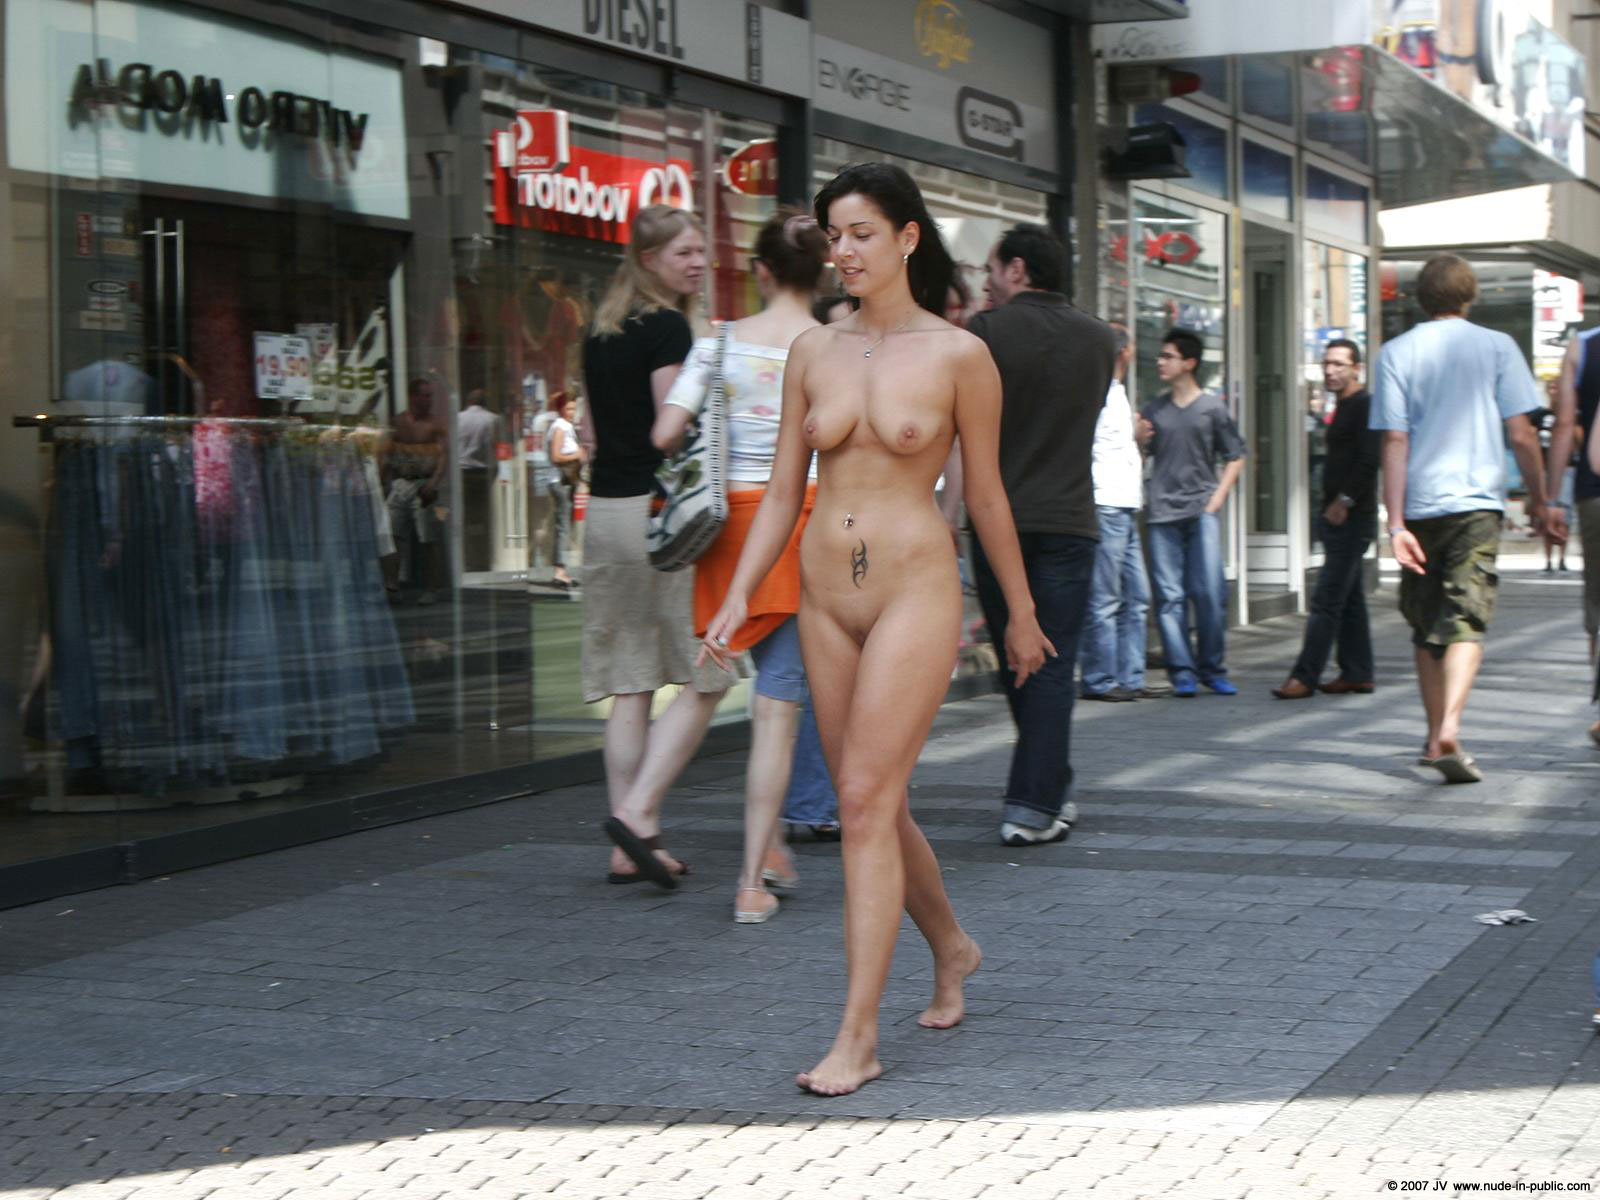 Nude chinese expose public, wife spreading vagina nude